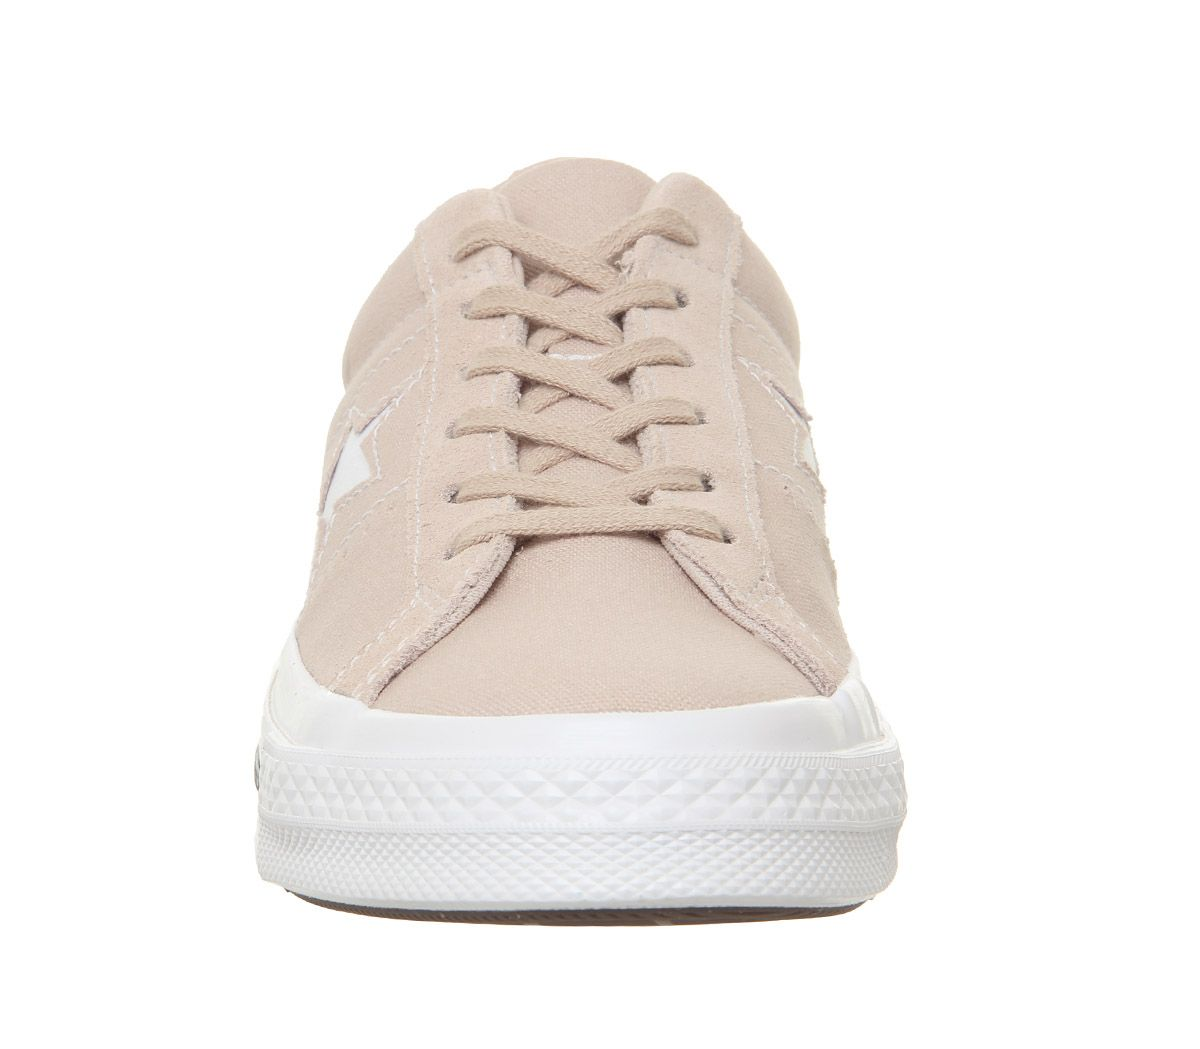 Womens-Converse-One-Star-Trainers-Particle-Beige-White-Black-Trainers-Shoes thumbnail 5